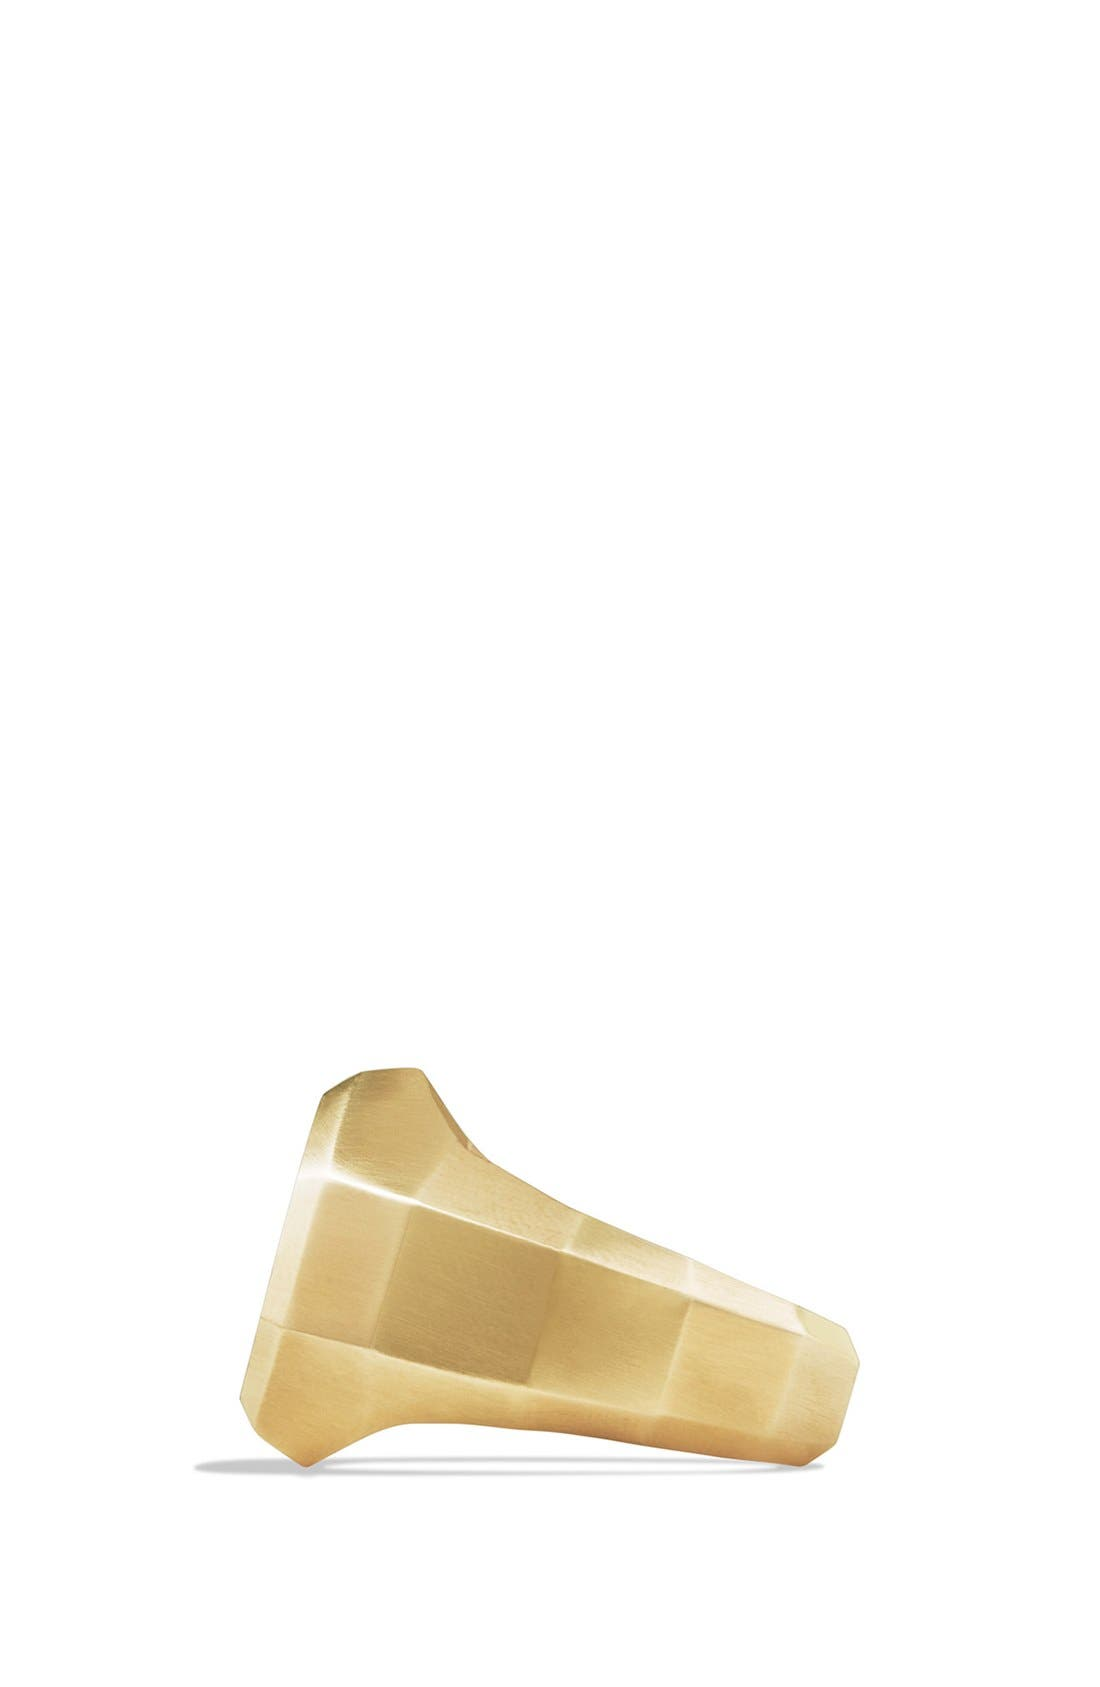 'Faceted' Signet Ring with 18k Gold,                             Alternate thumbnail 3, color,                             Two Tone